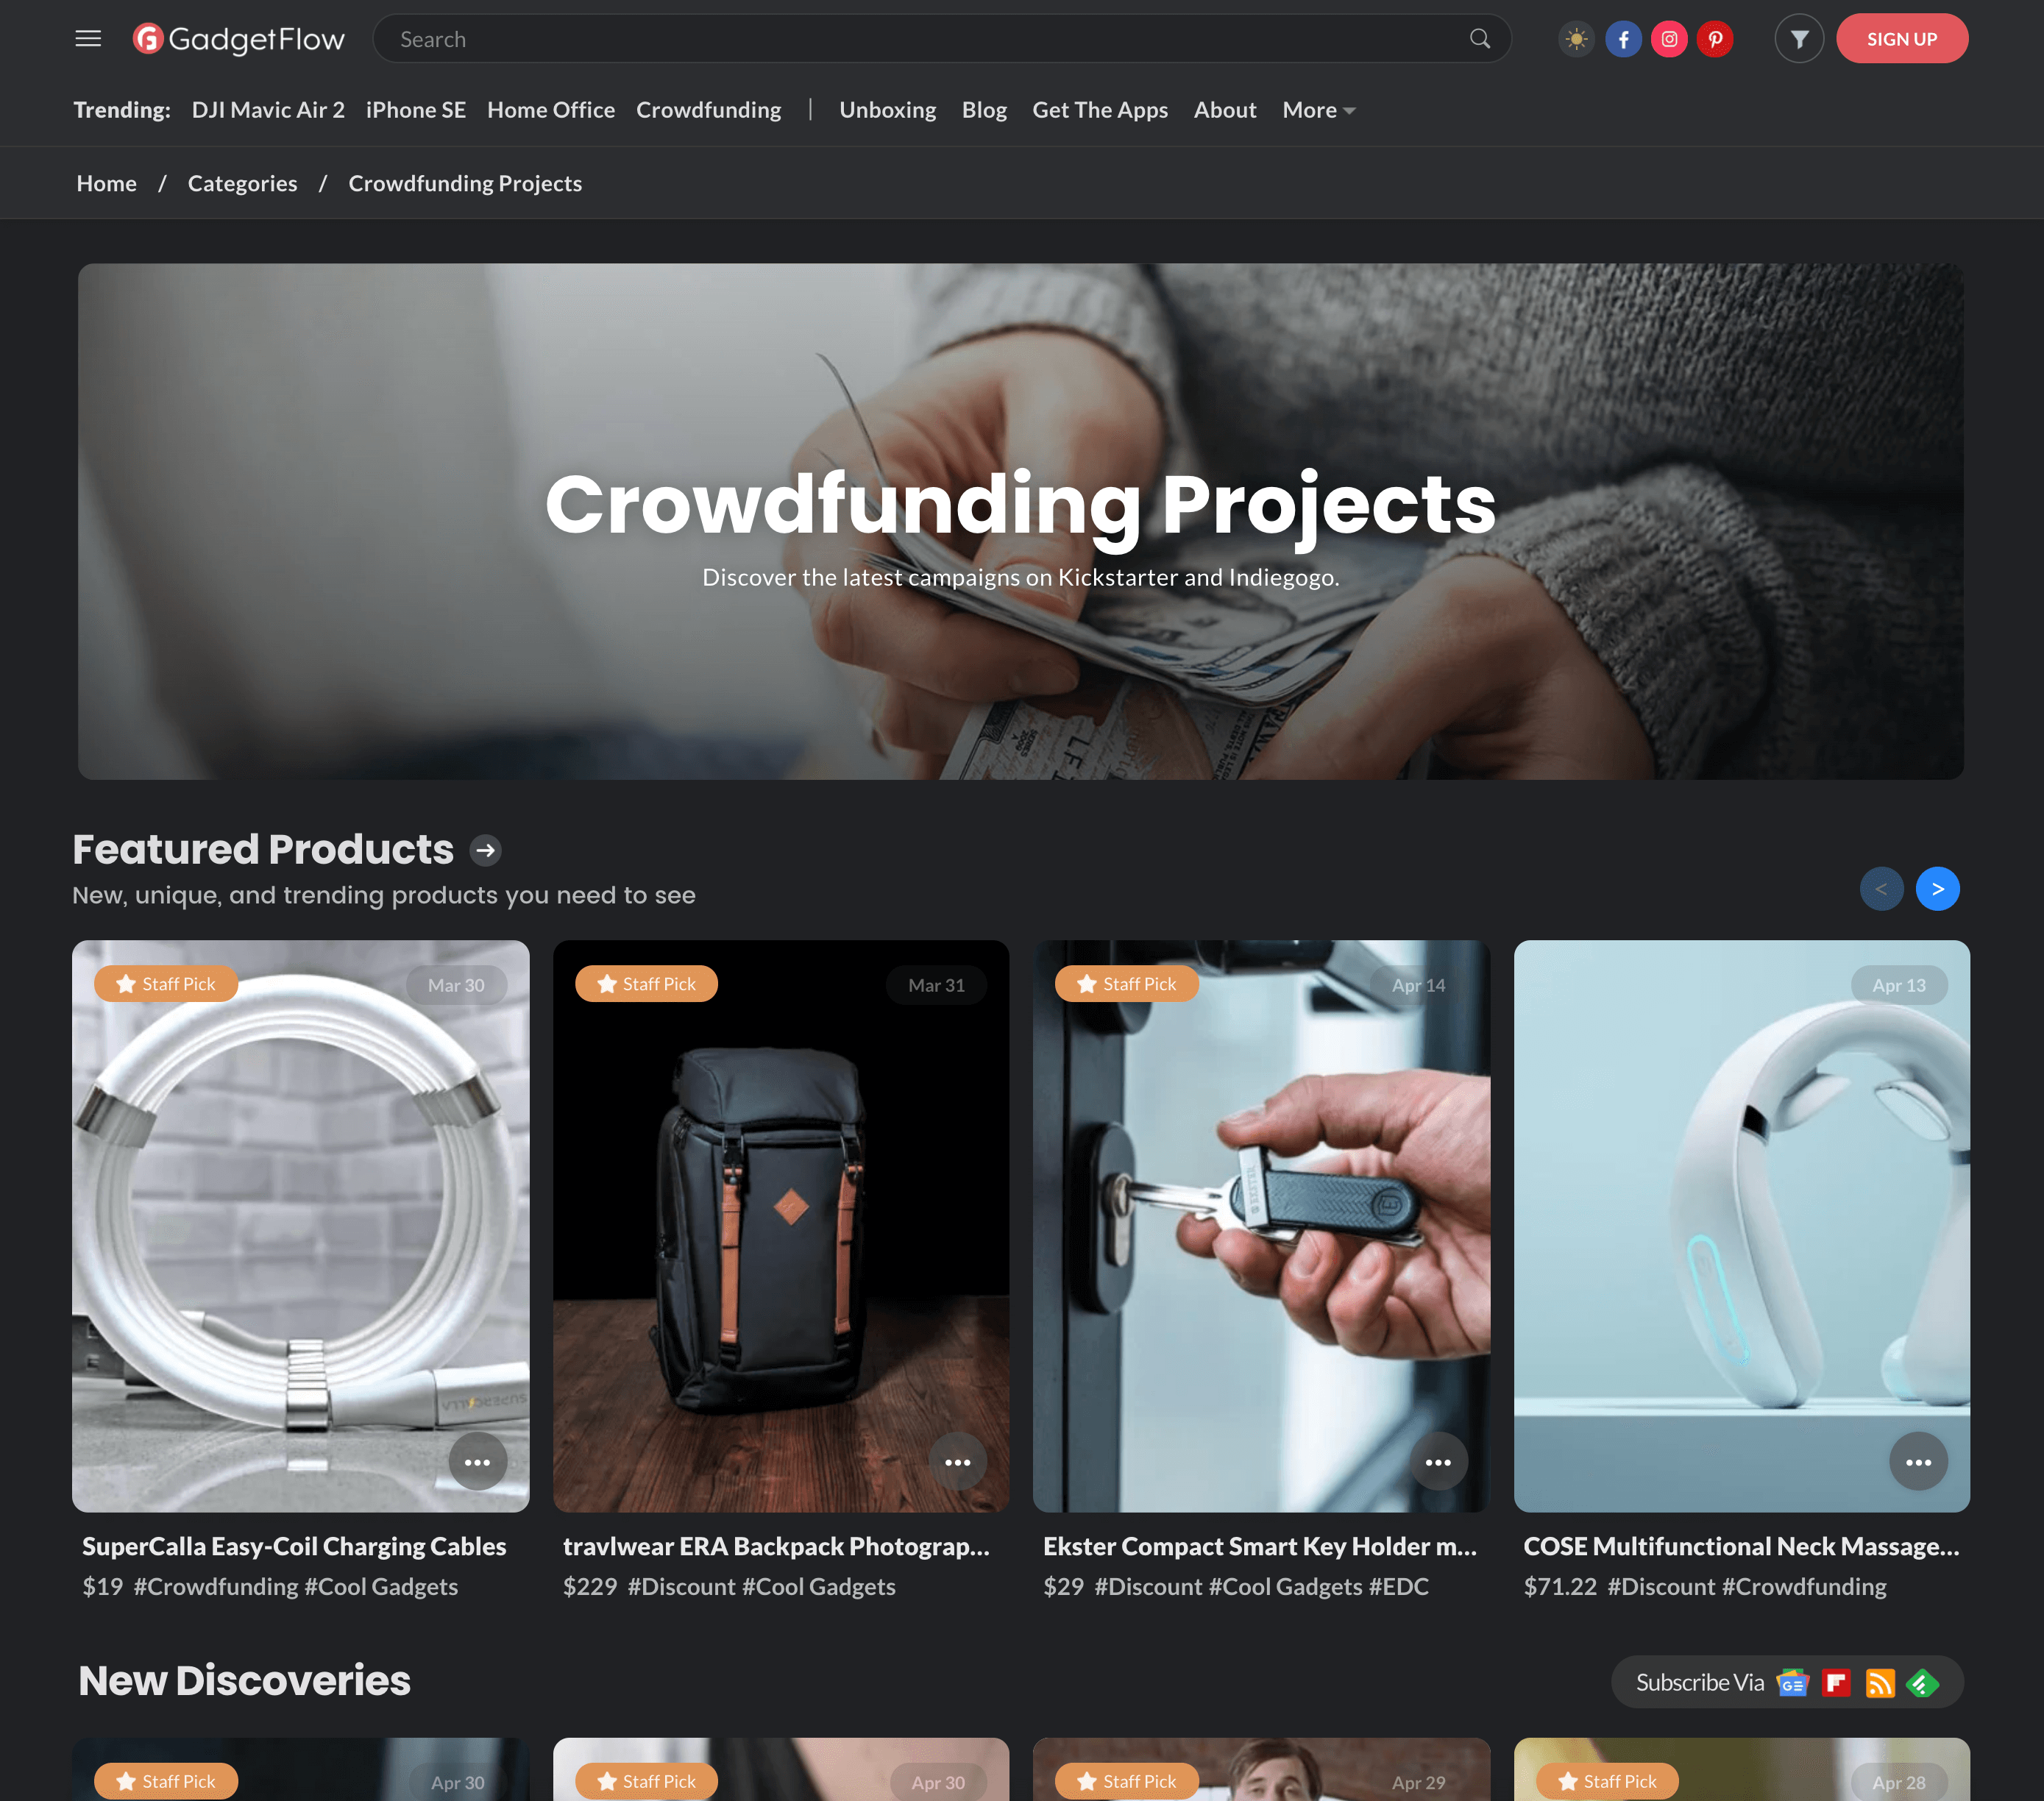 Crowdfunding Projects